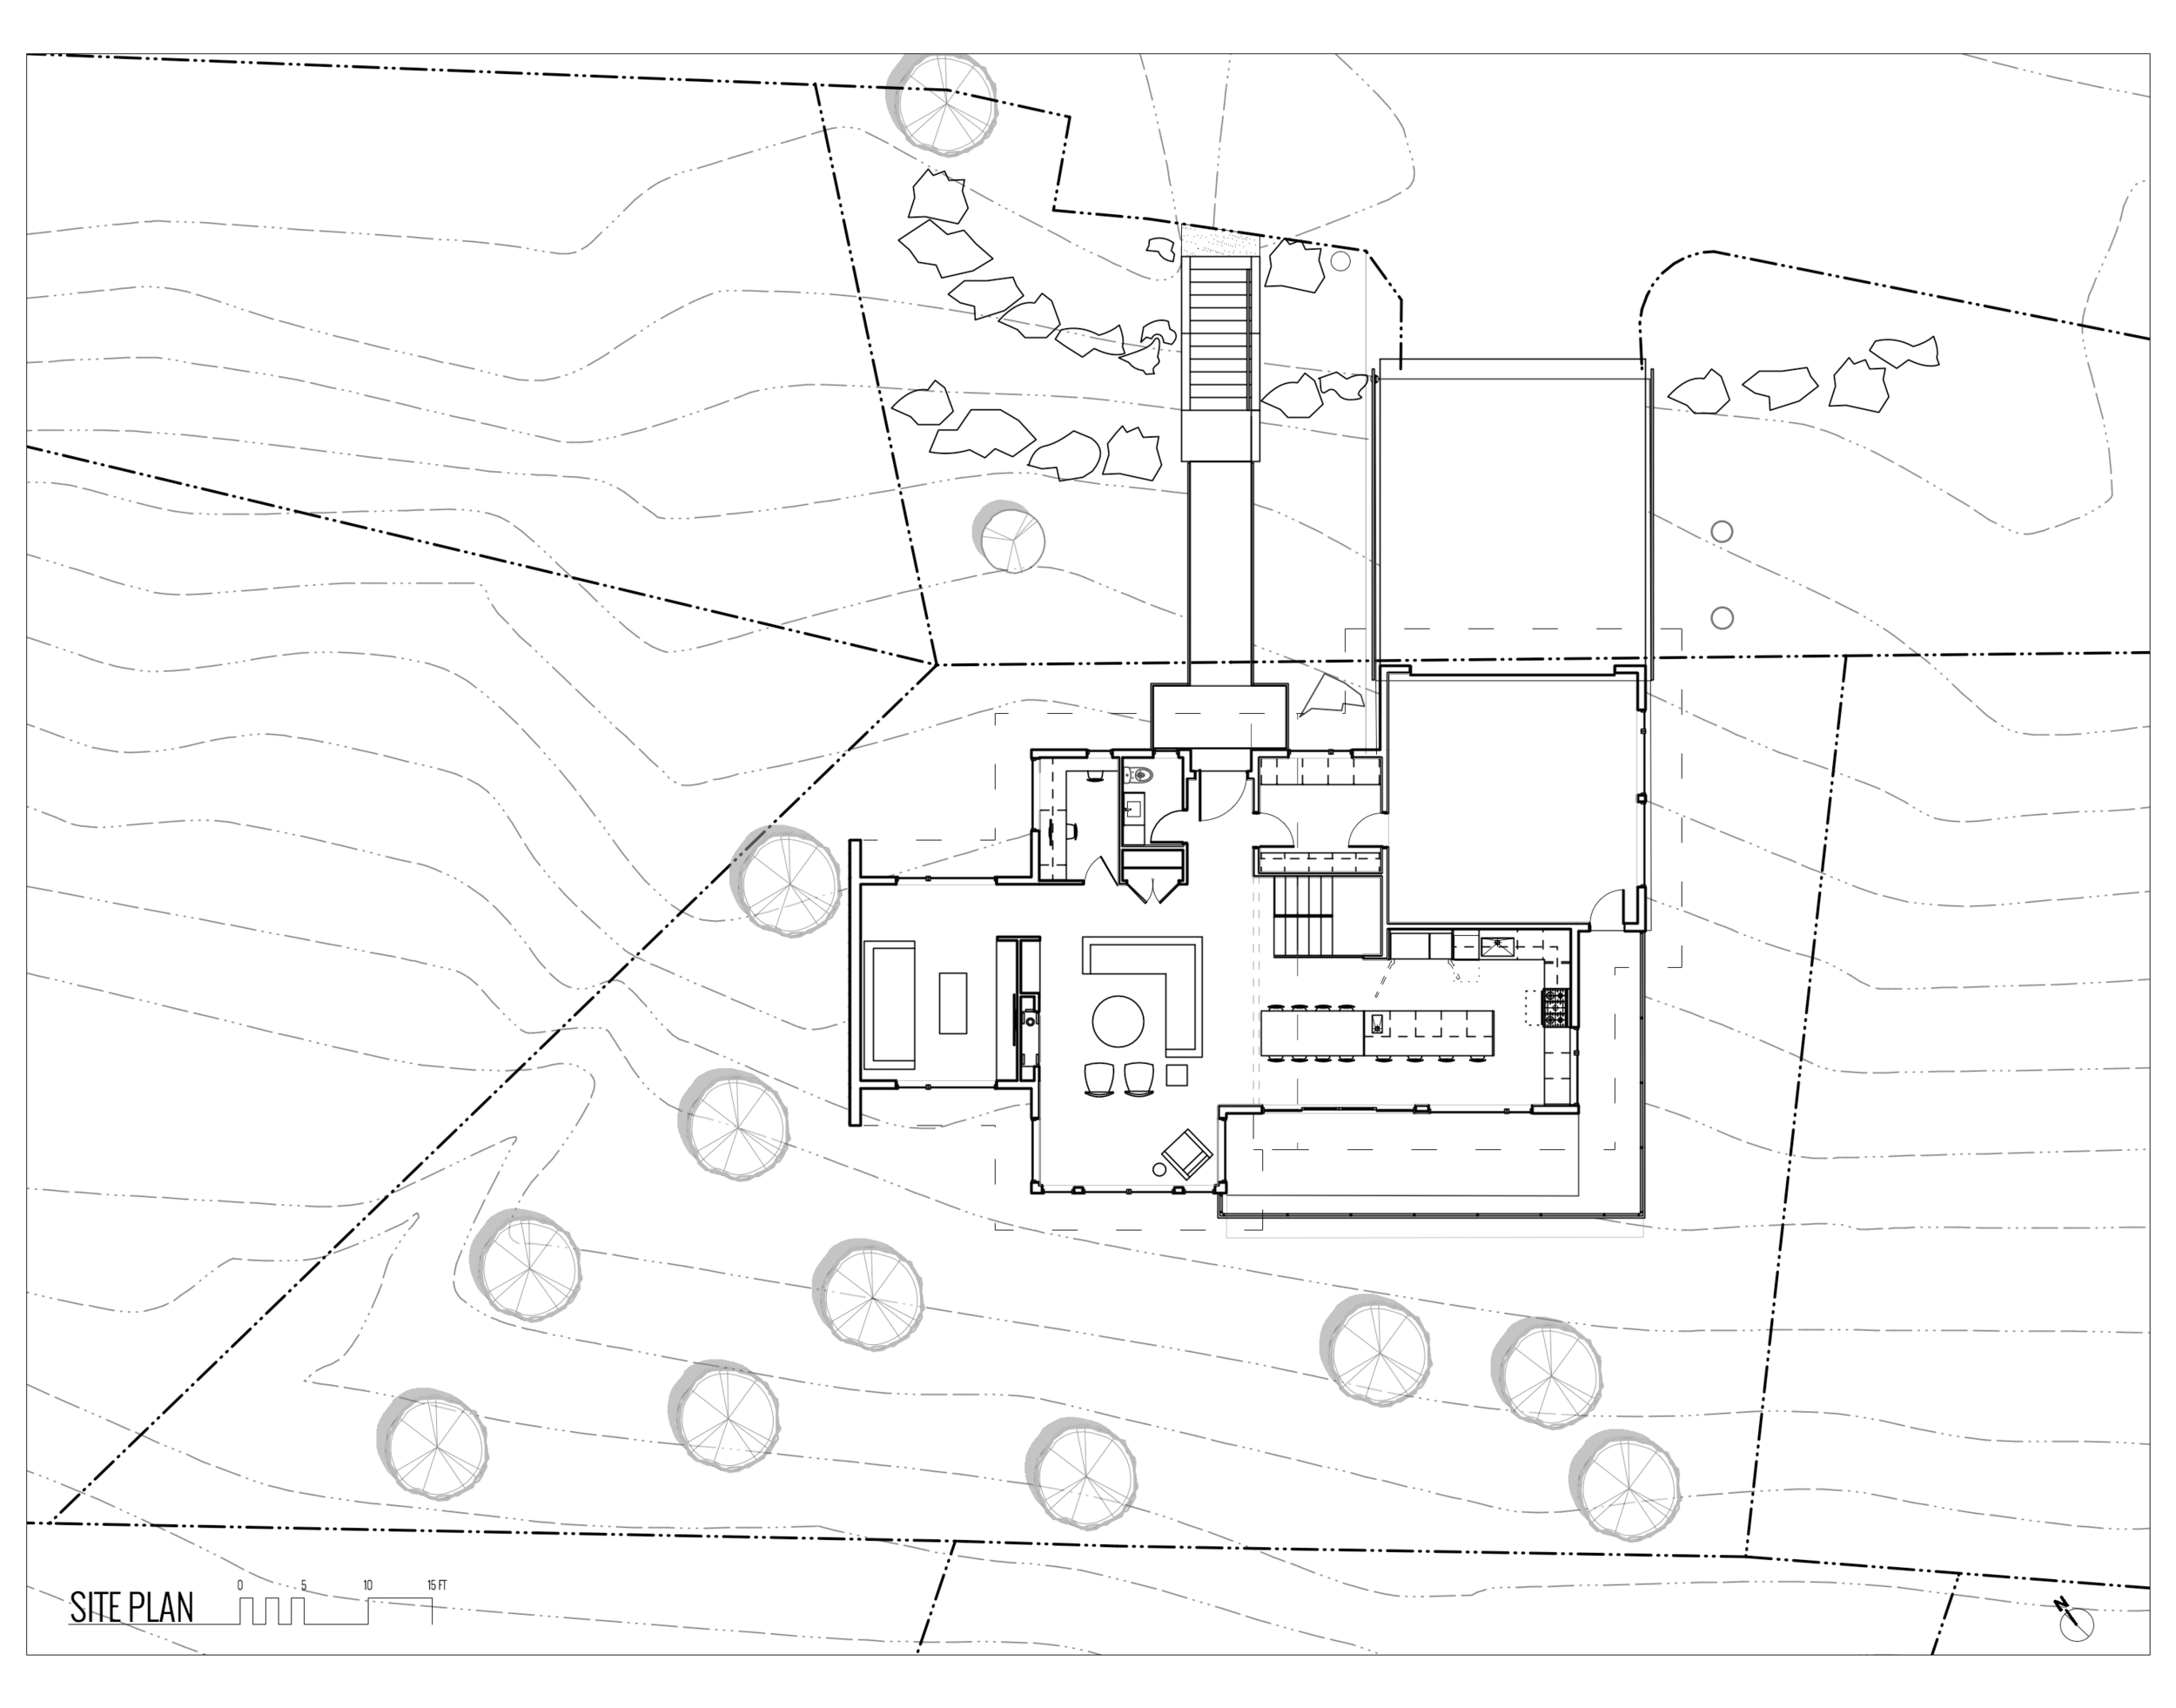 Site Plan of Rebuilt Modern House design and rebuild on steep lot on Gonzales Hill in Victoria BC by MDRN Built